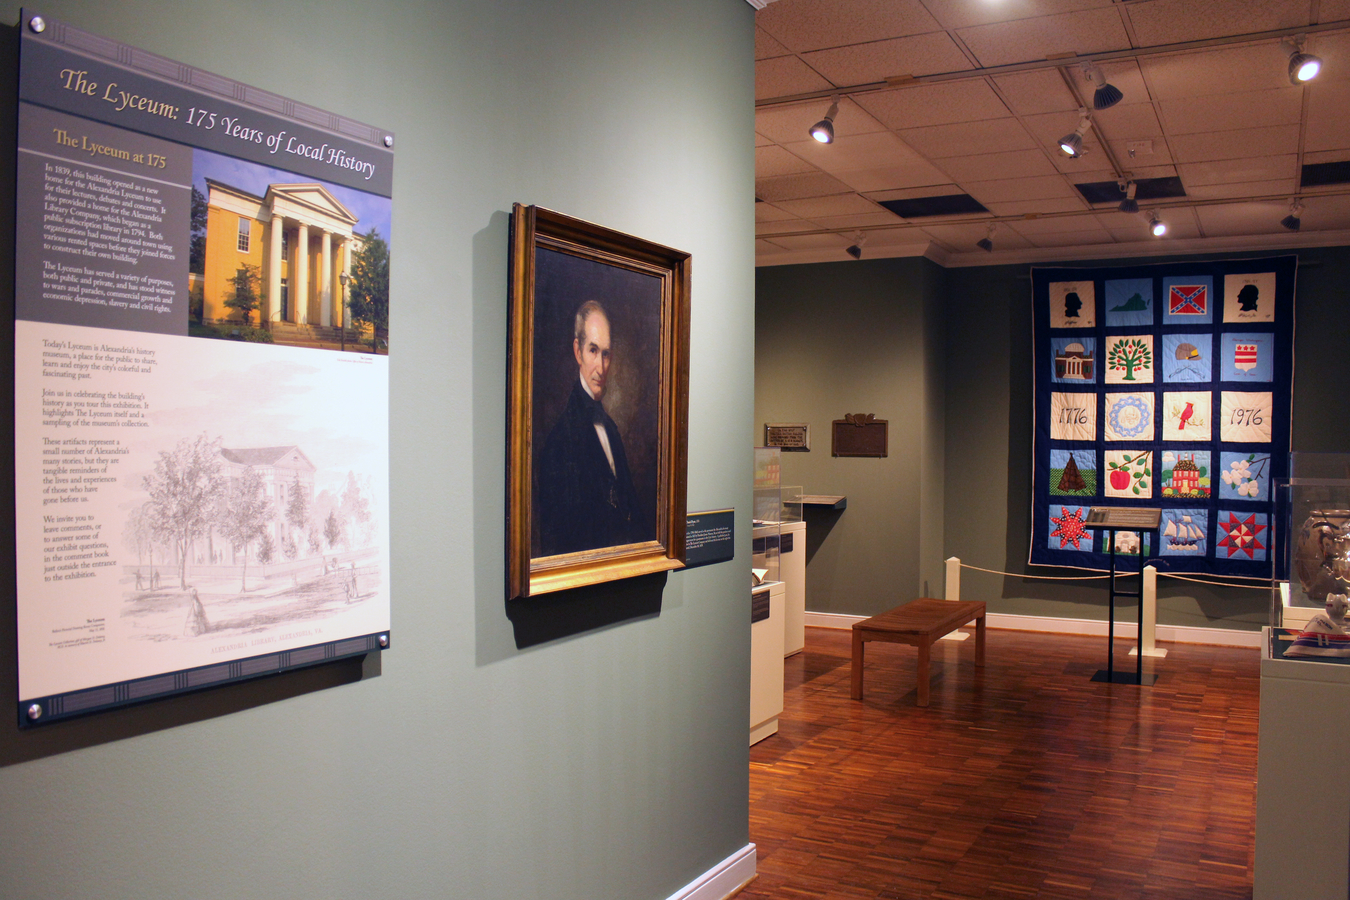 2 Lycem 4575 : Entry to the 175 years of Local History exhibit